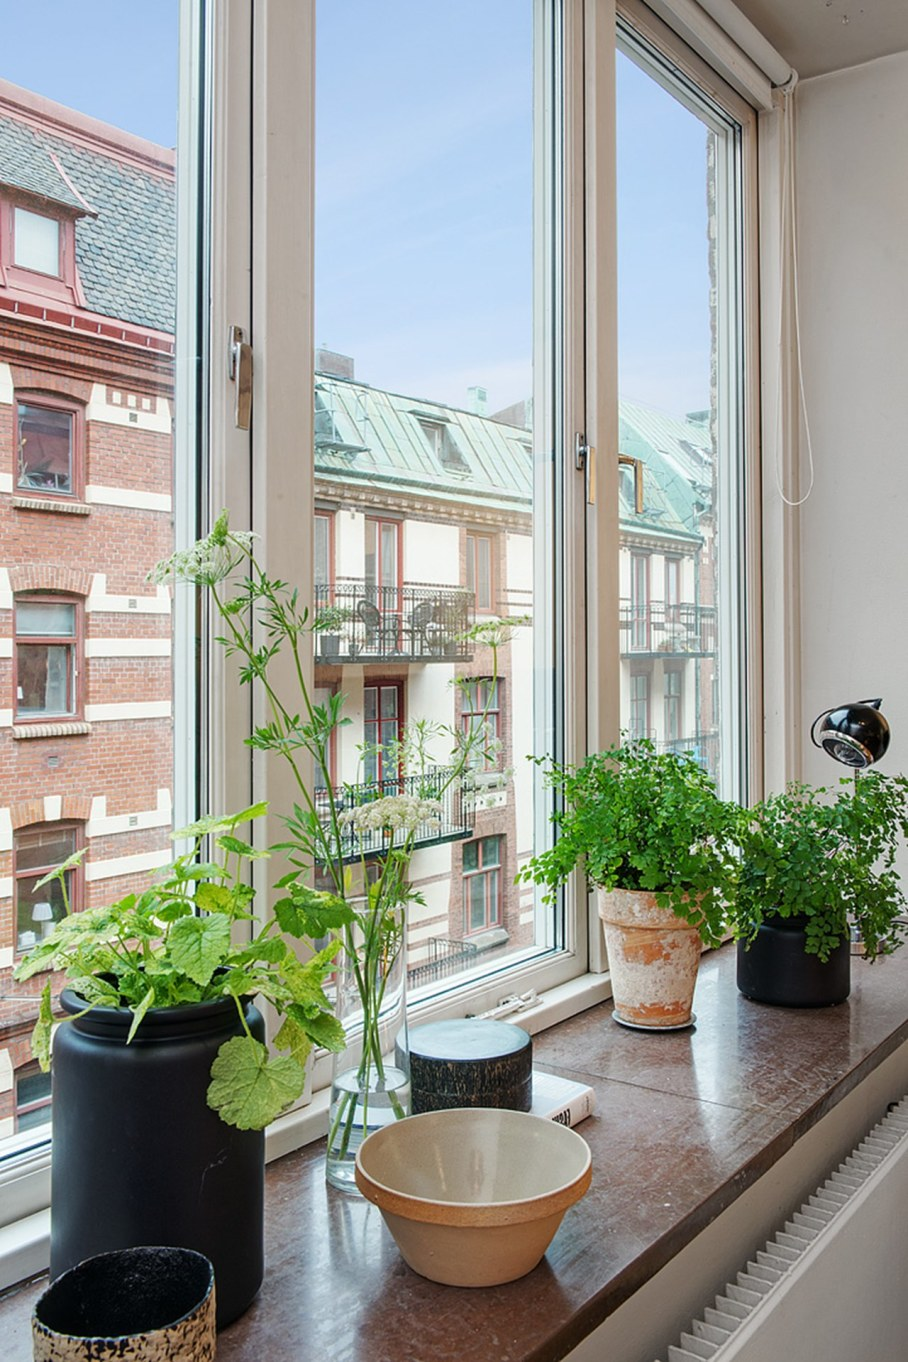 Scandinavian style interior design - large number of plants and flowers in pots